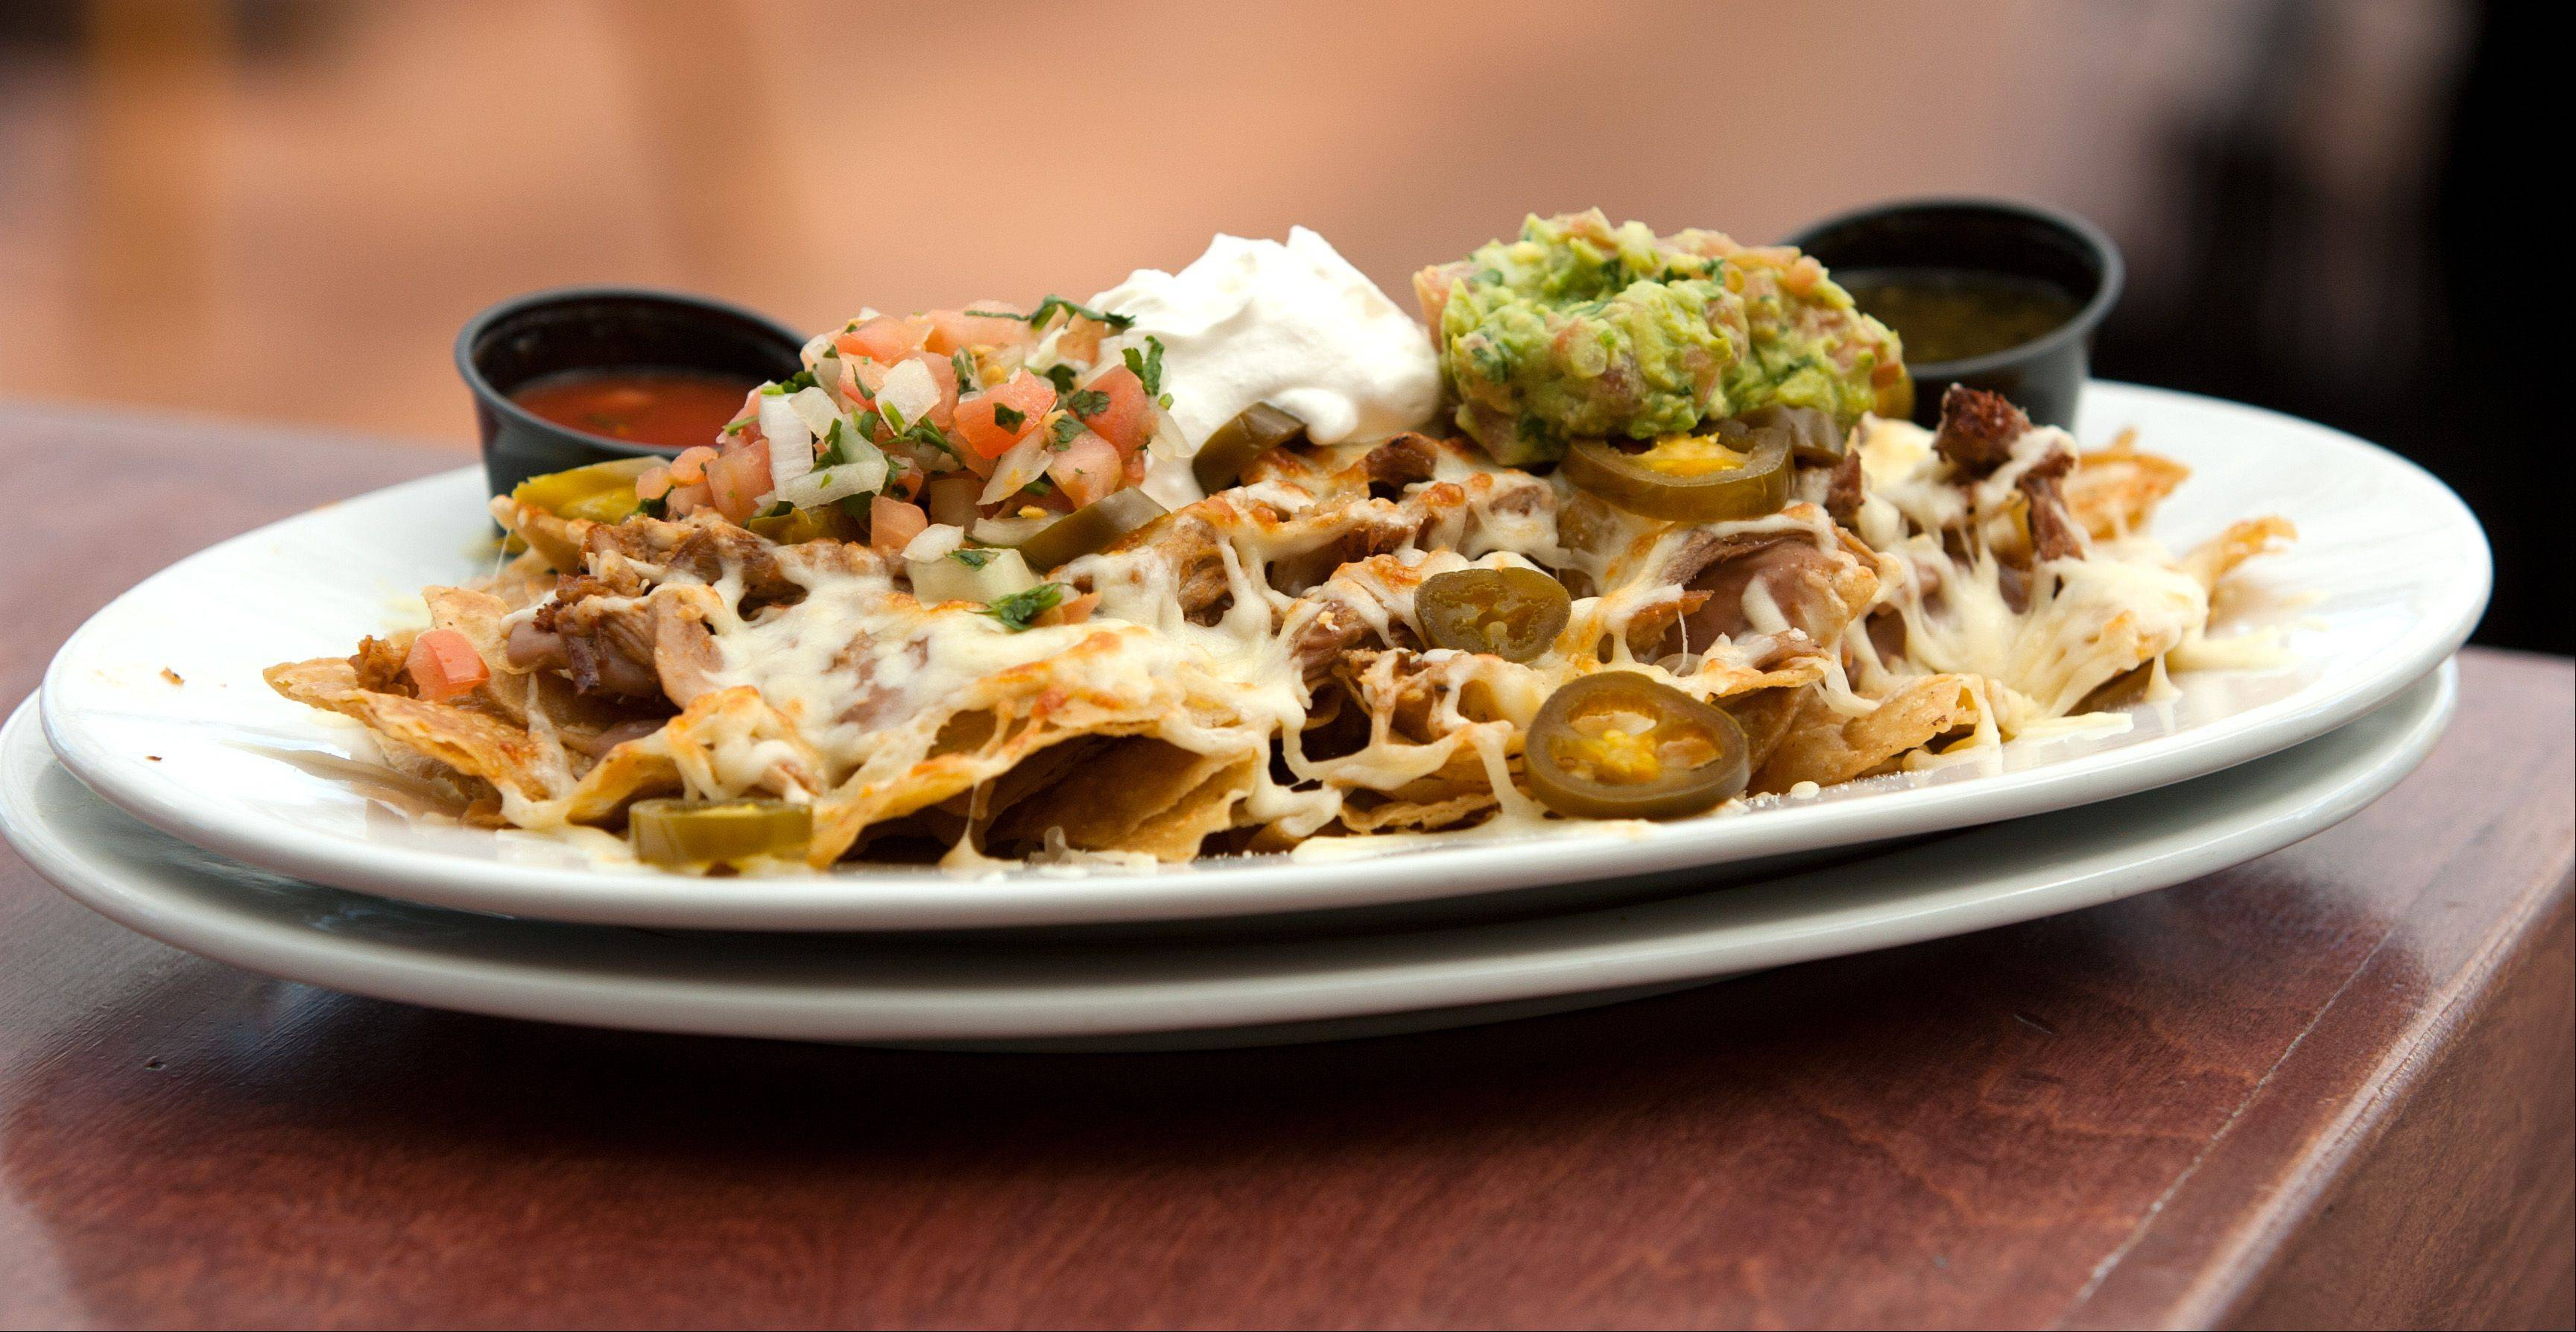 Get your meal started with nachos or another appetizer at HB Jones in Elmhurst.